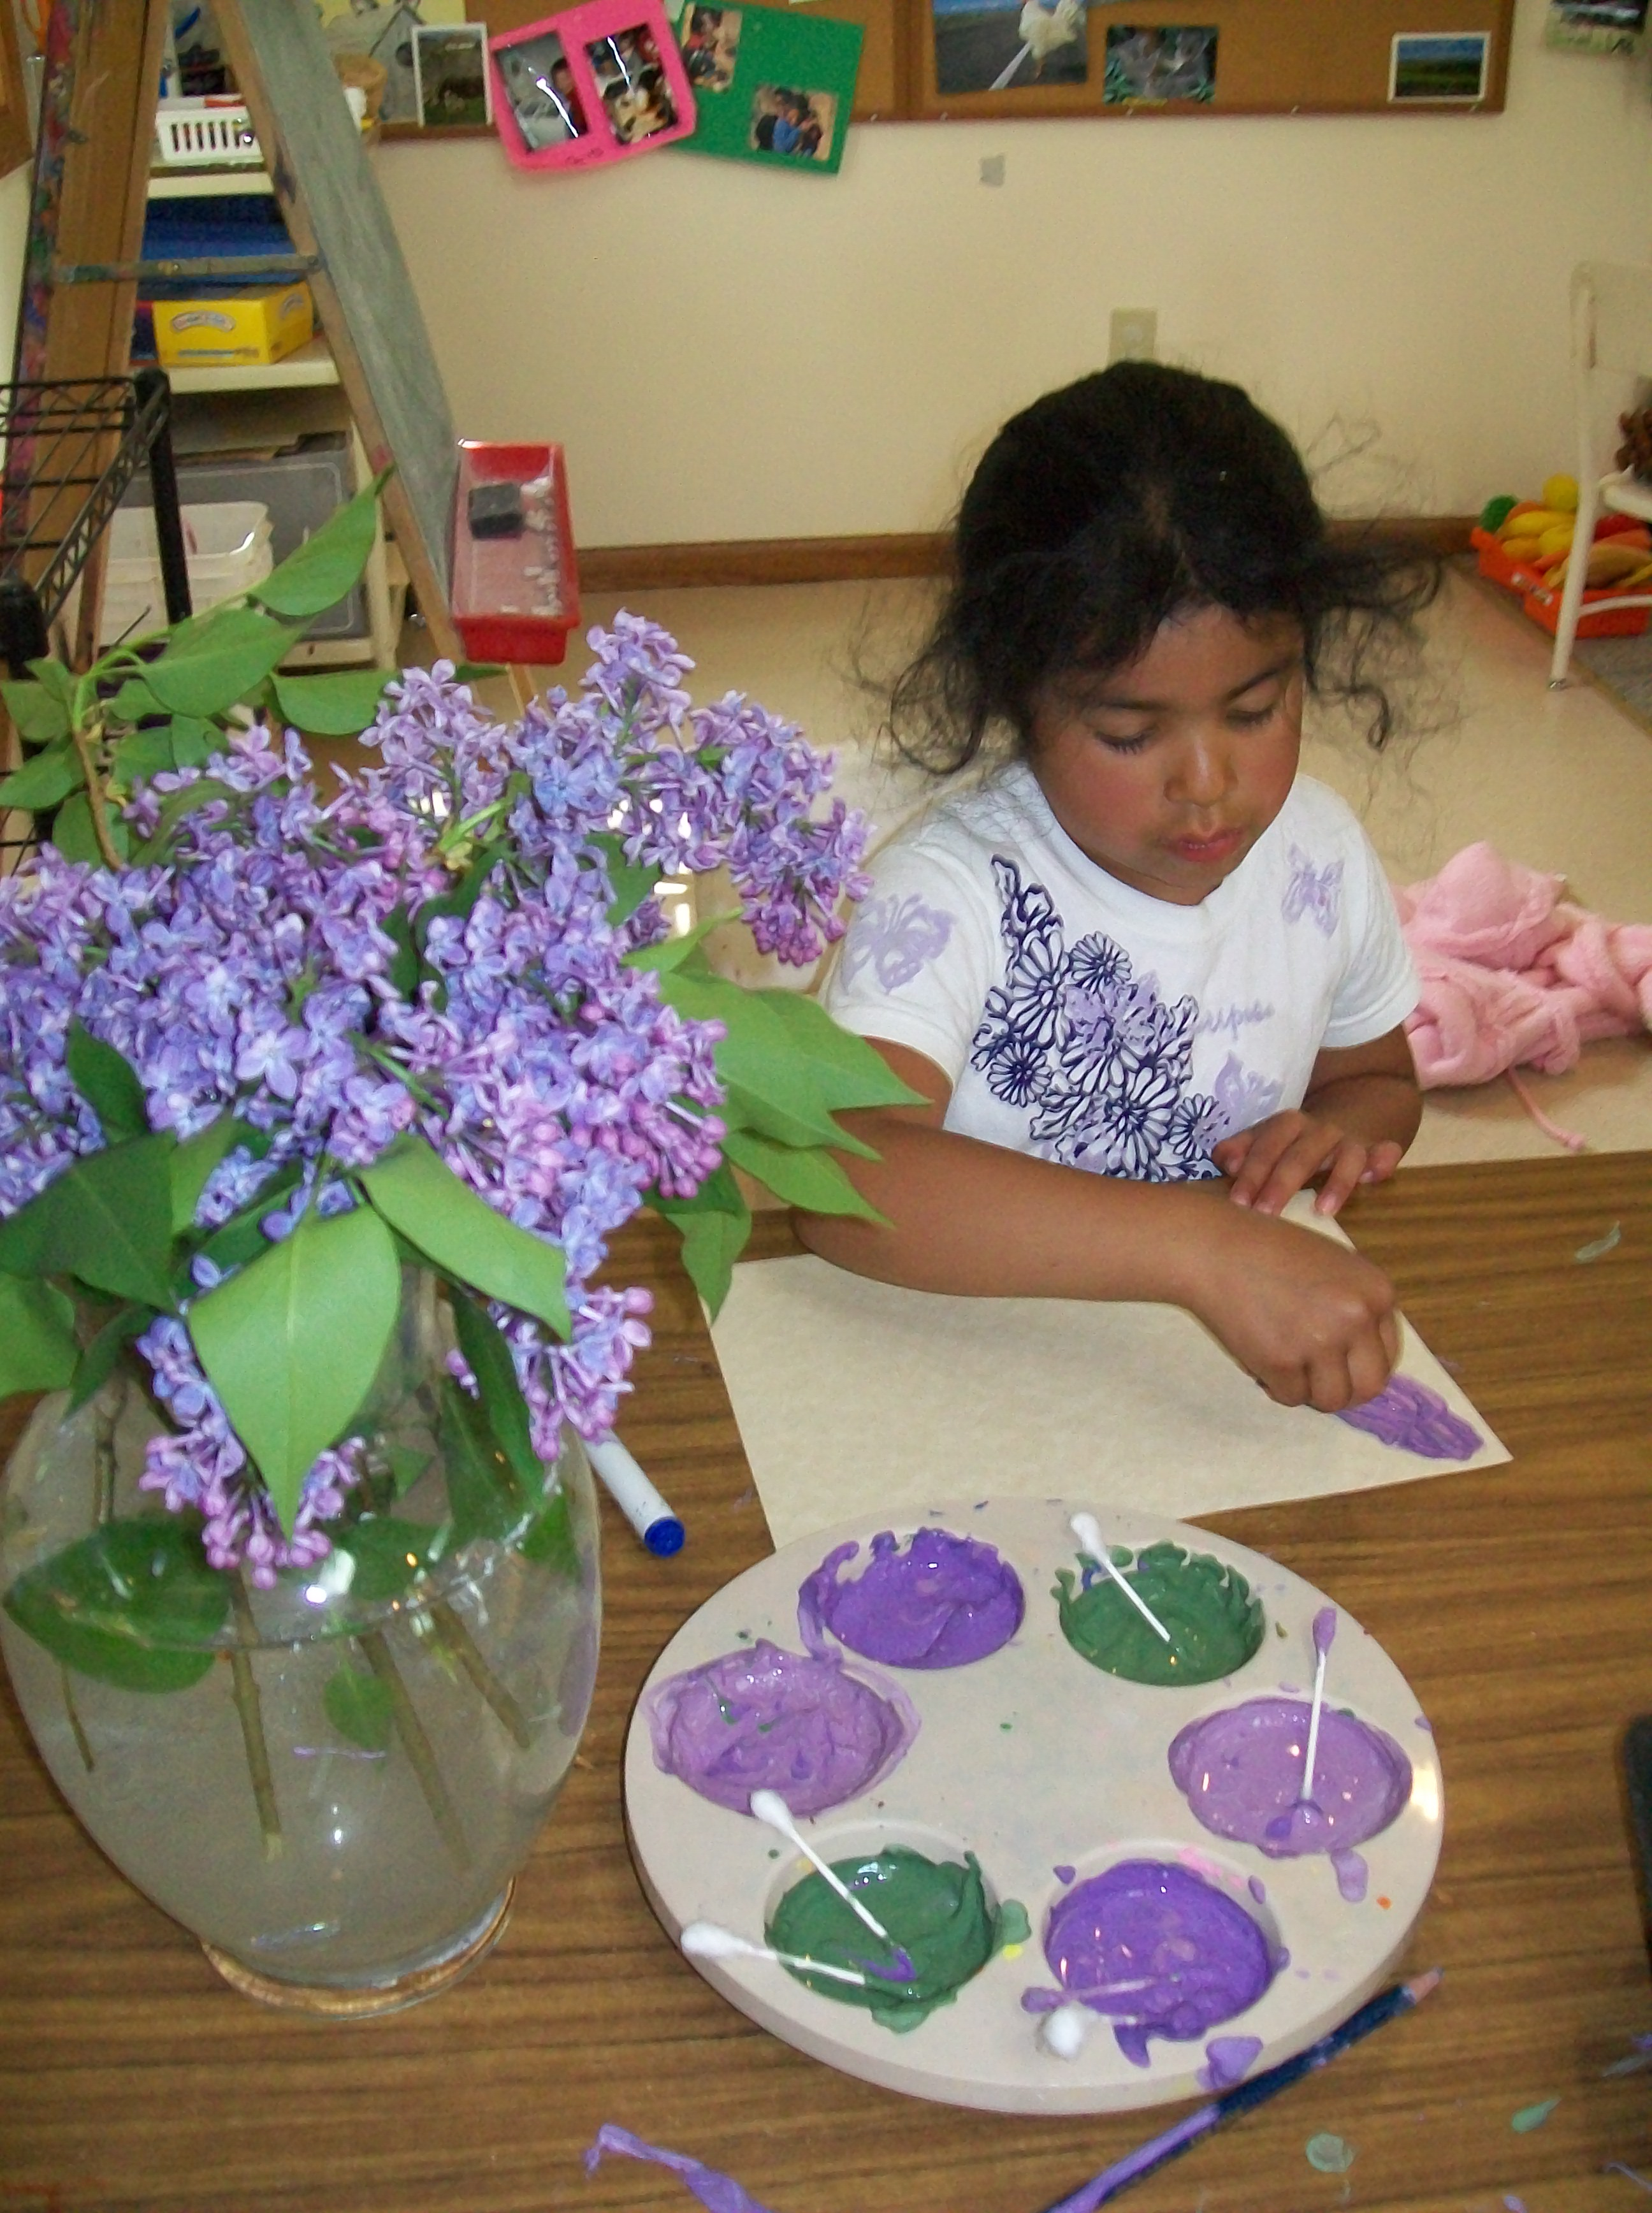 Child painting inspired by bouquet of lilacs.